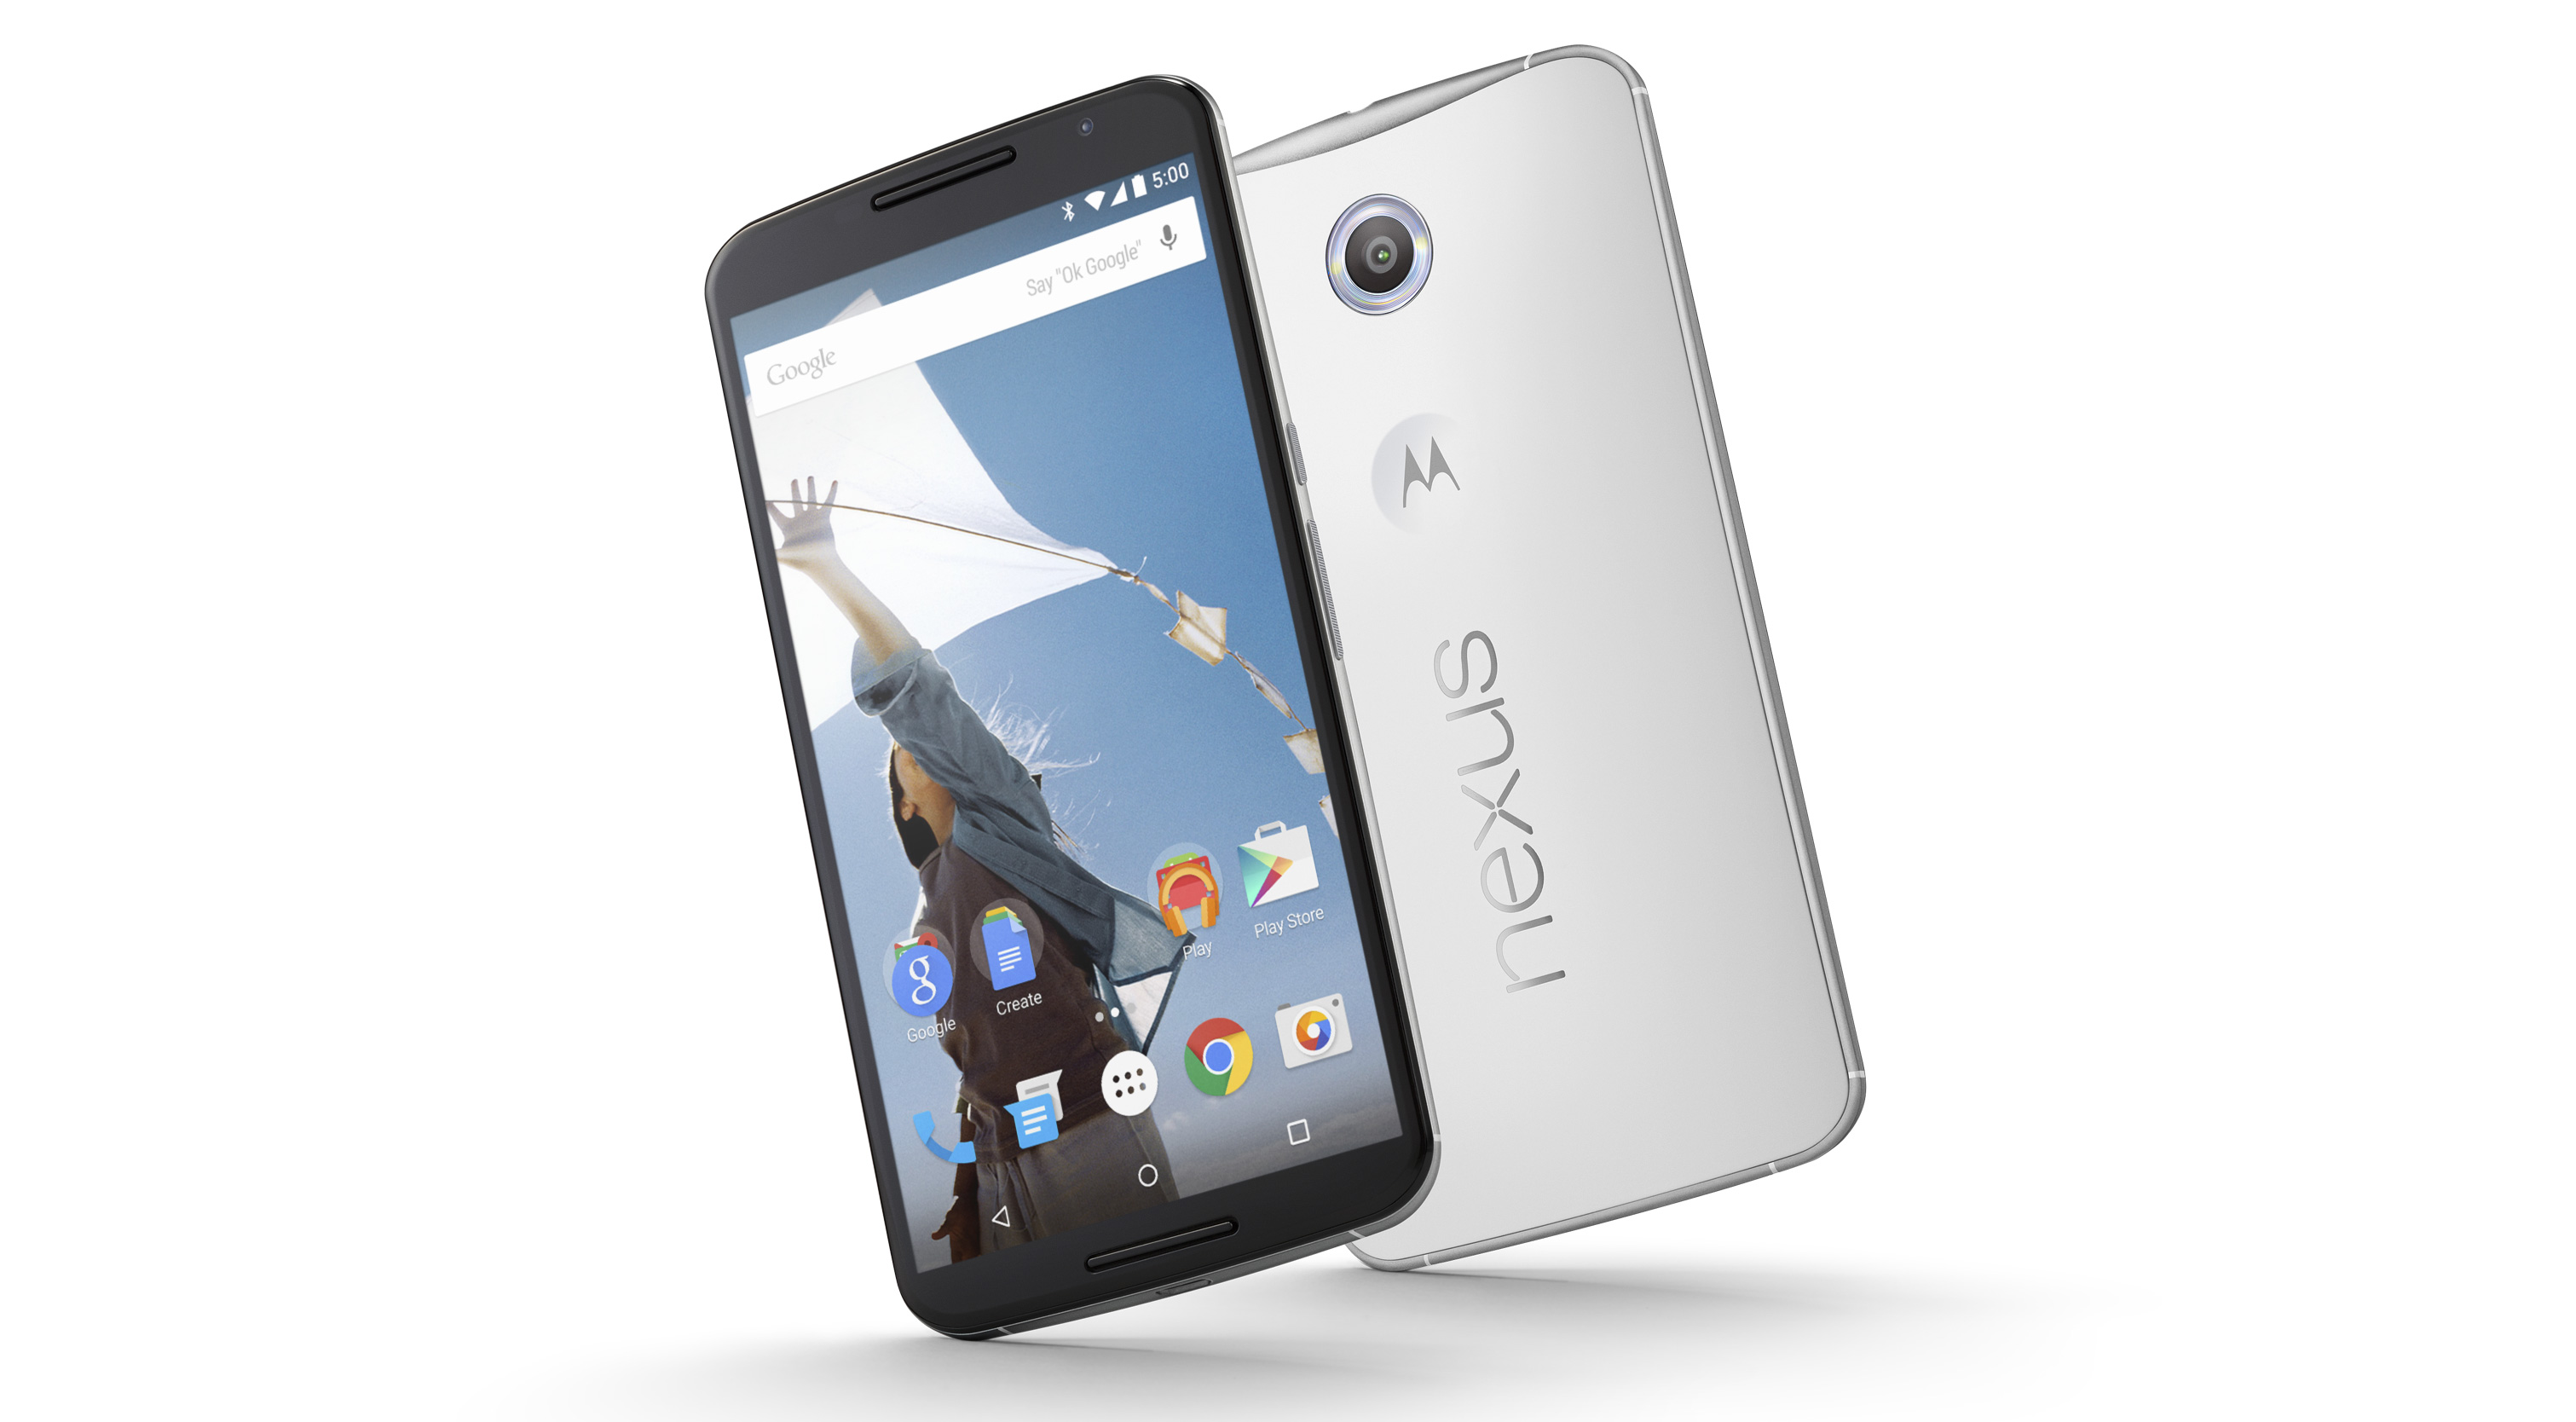 nexus-6-deal-ebay-300-bucks-cheap-nexus-6-price